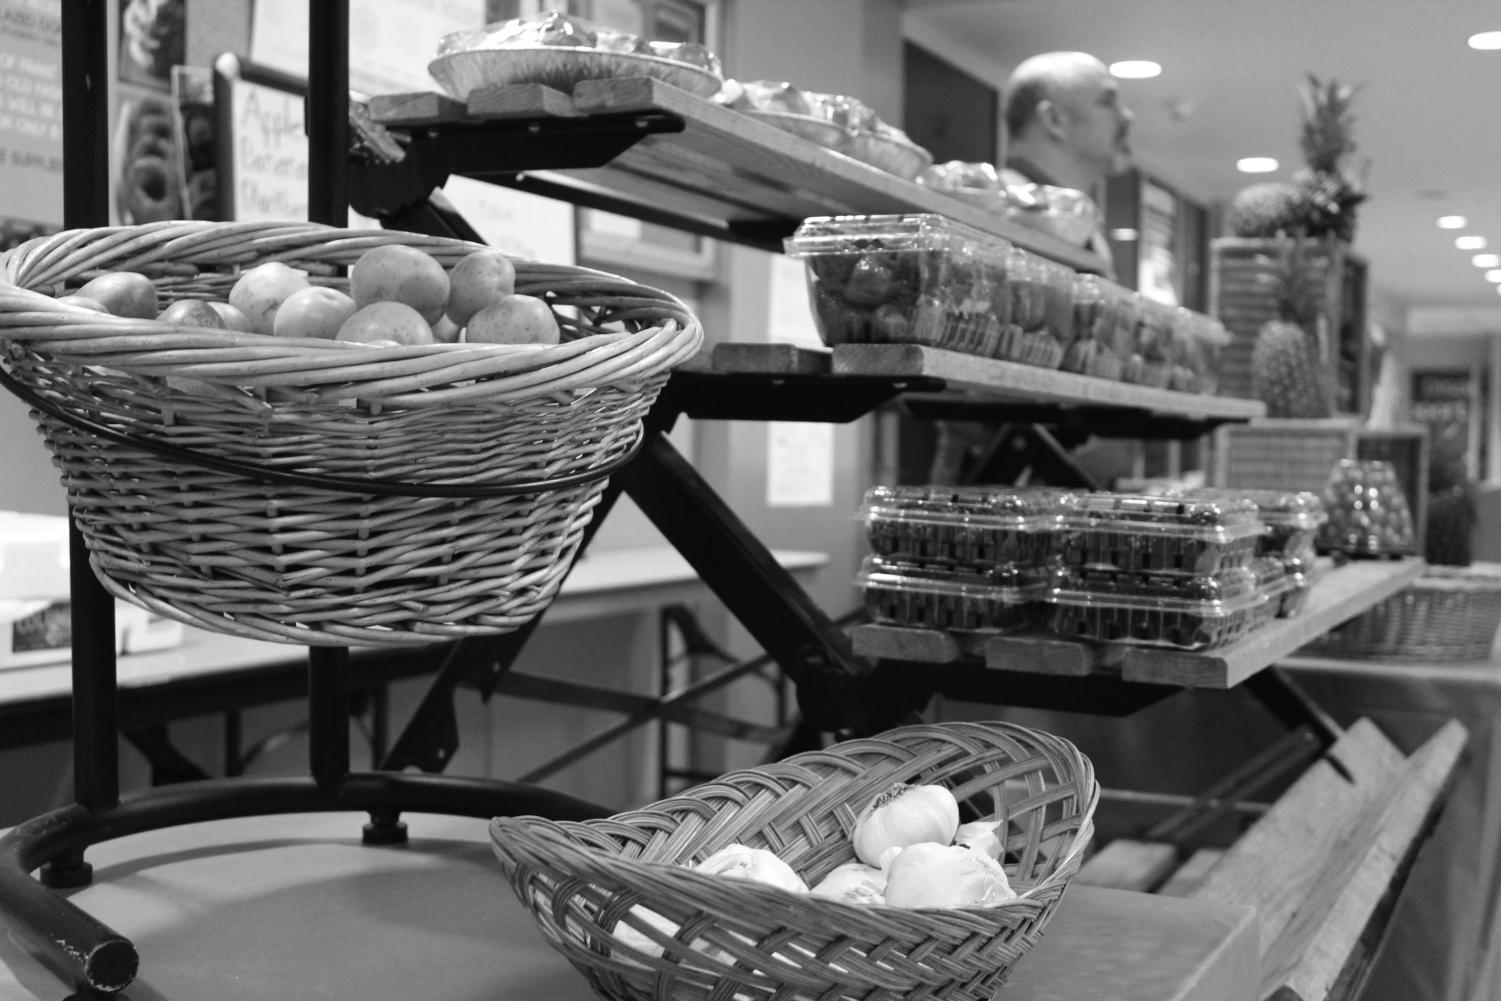 Students shop at the Fresh Market in Tawanka Hall. The market was set up to provide students with healthy fresh foods | Mckenzie Ford for The Easterner